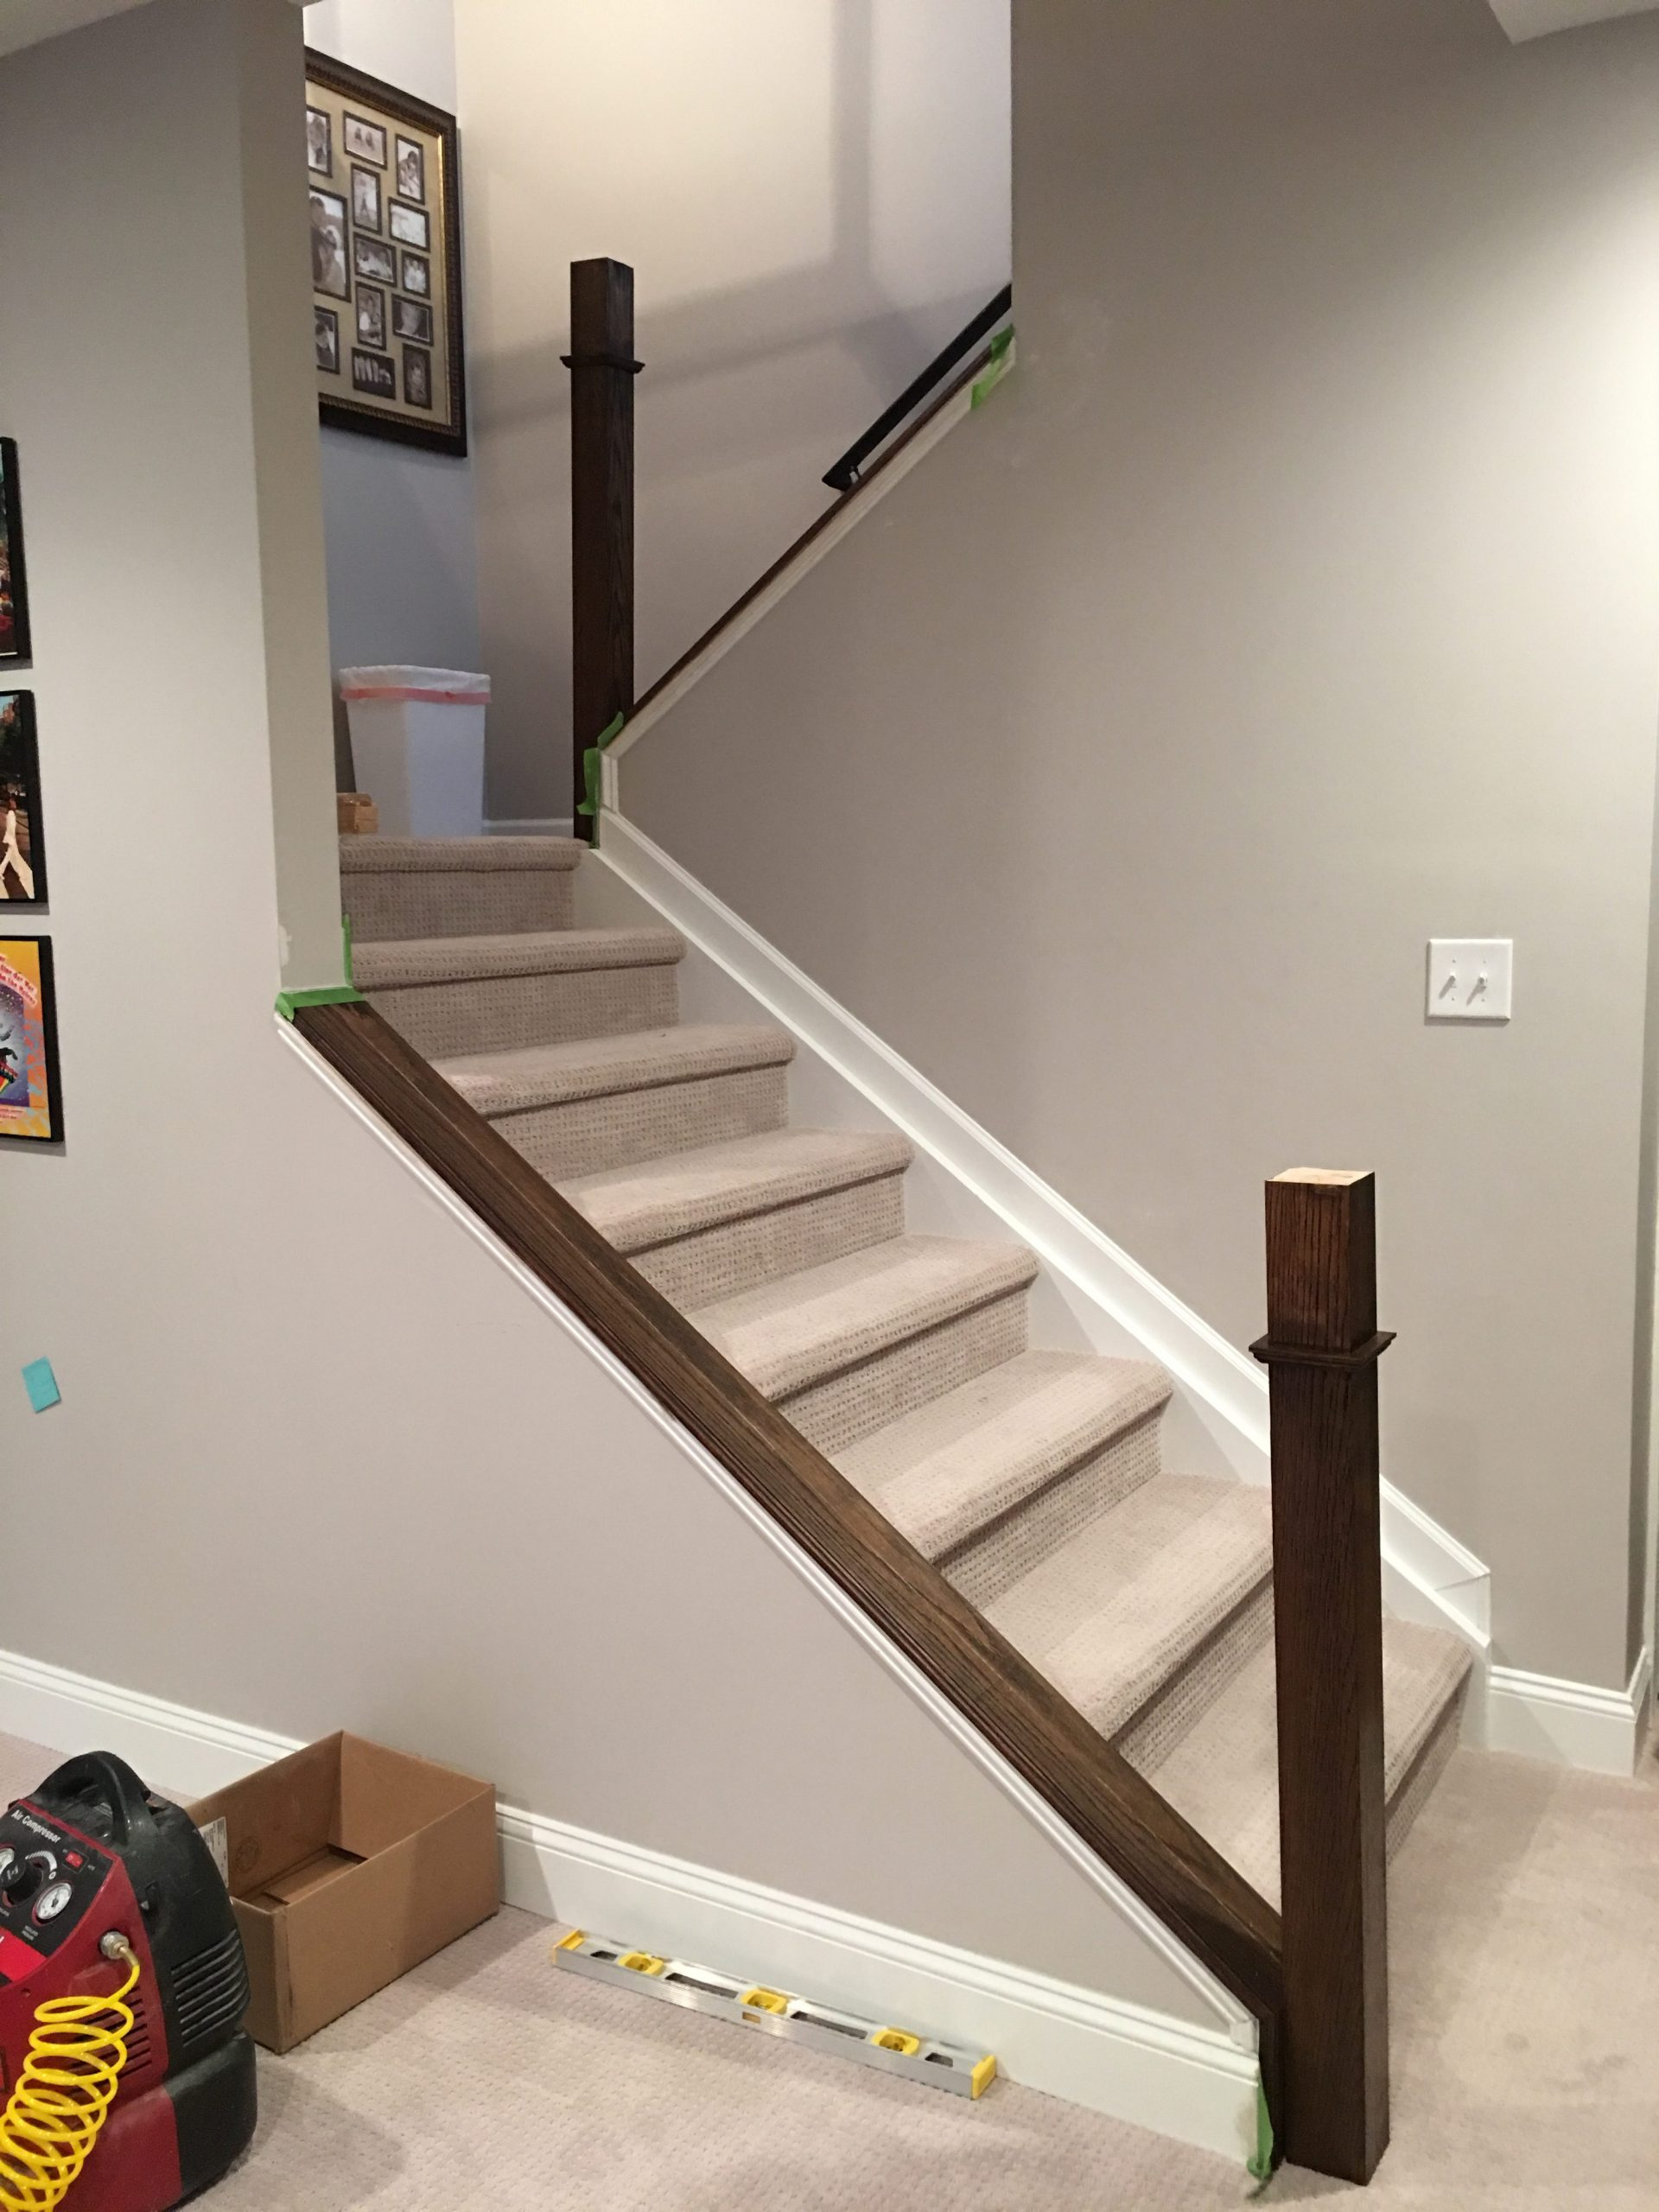 How to build a stair railing